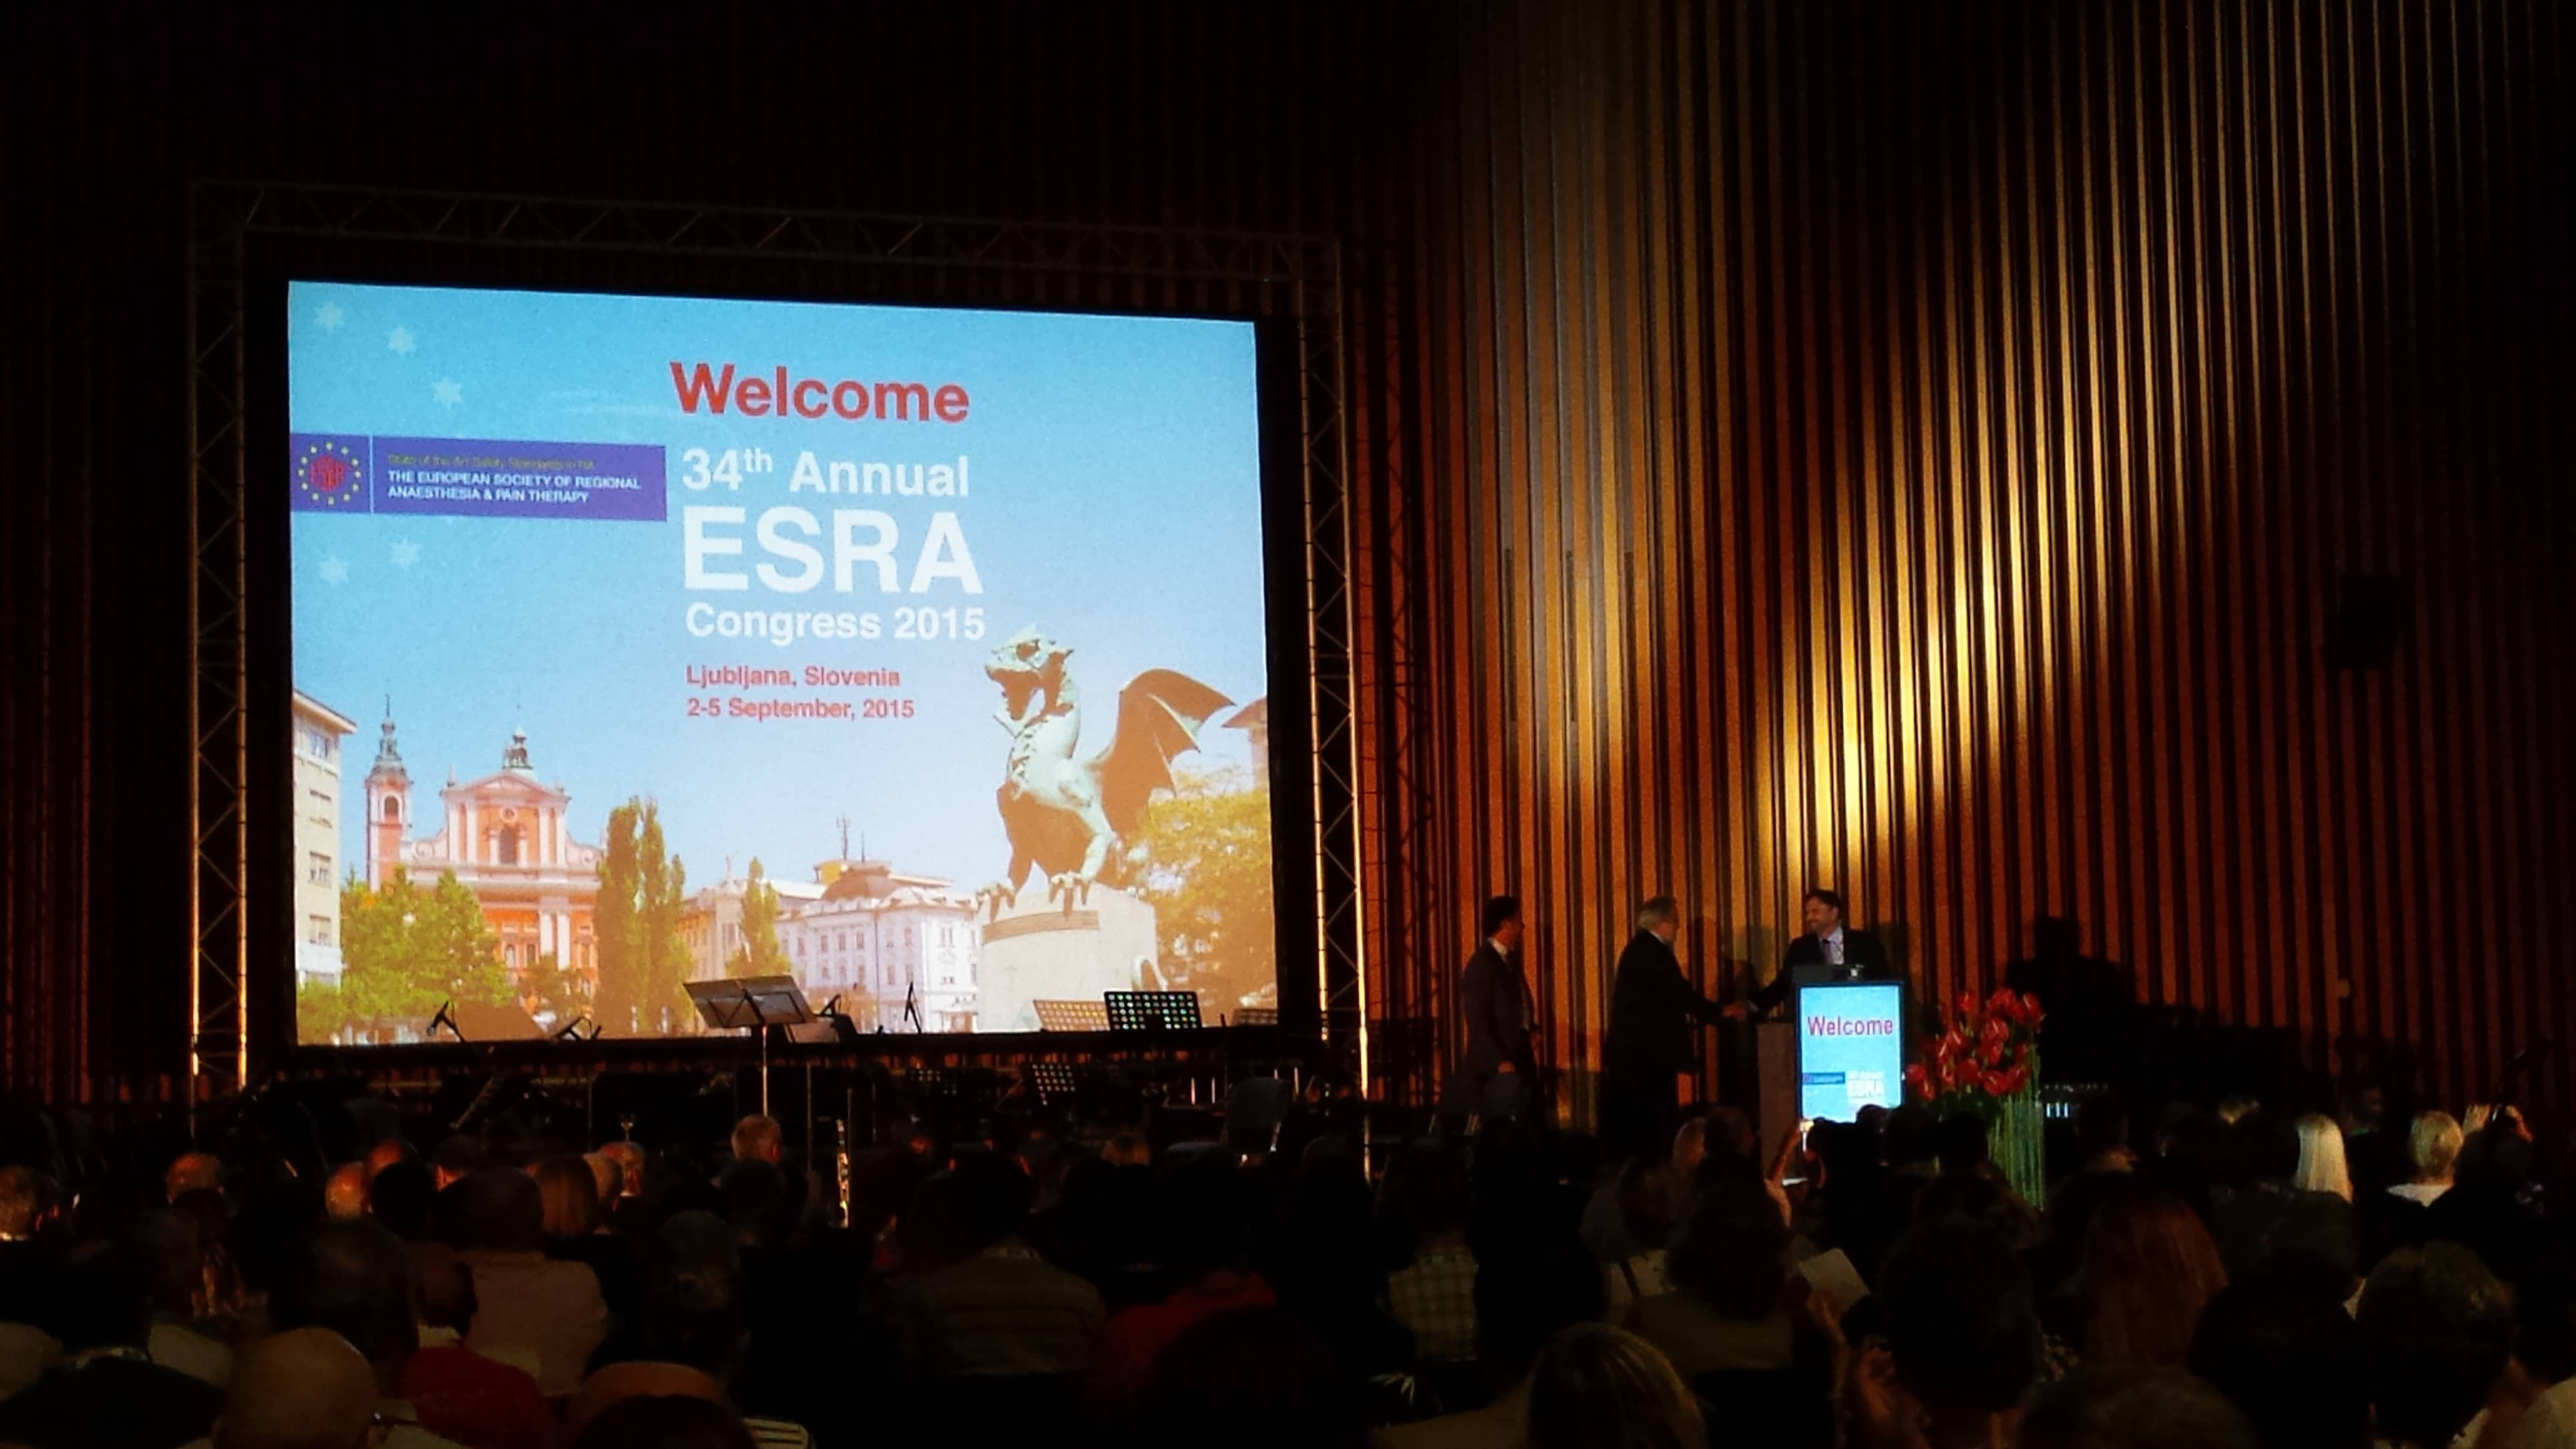 ESRA 2015 opening, GR Ljubljana Exhibition and Convention Centre